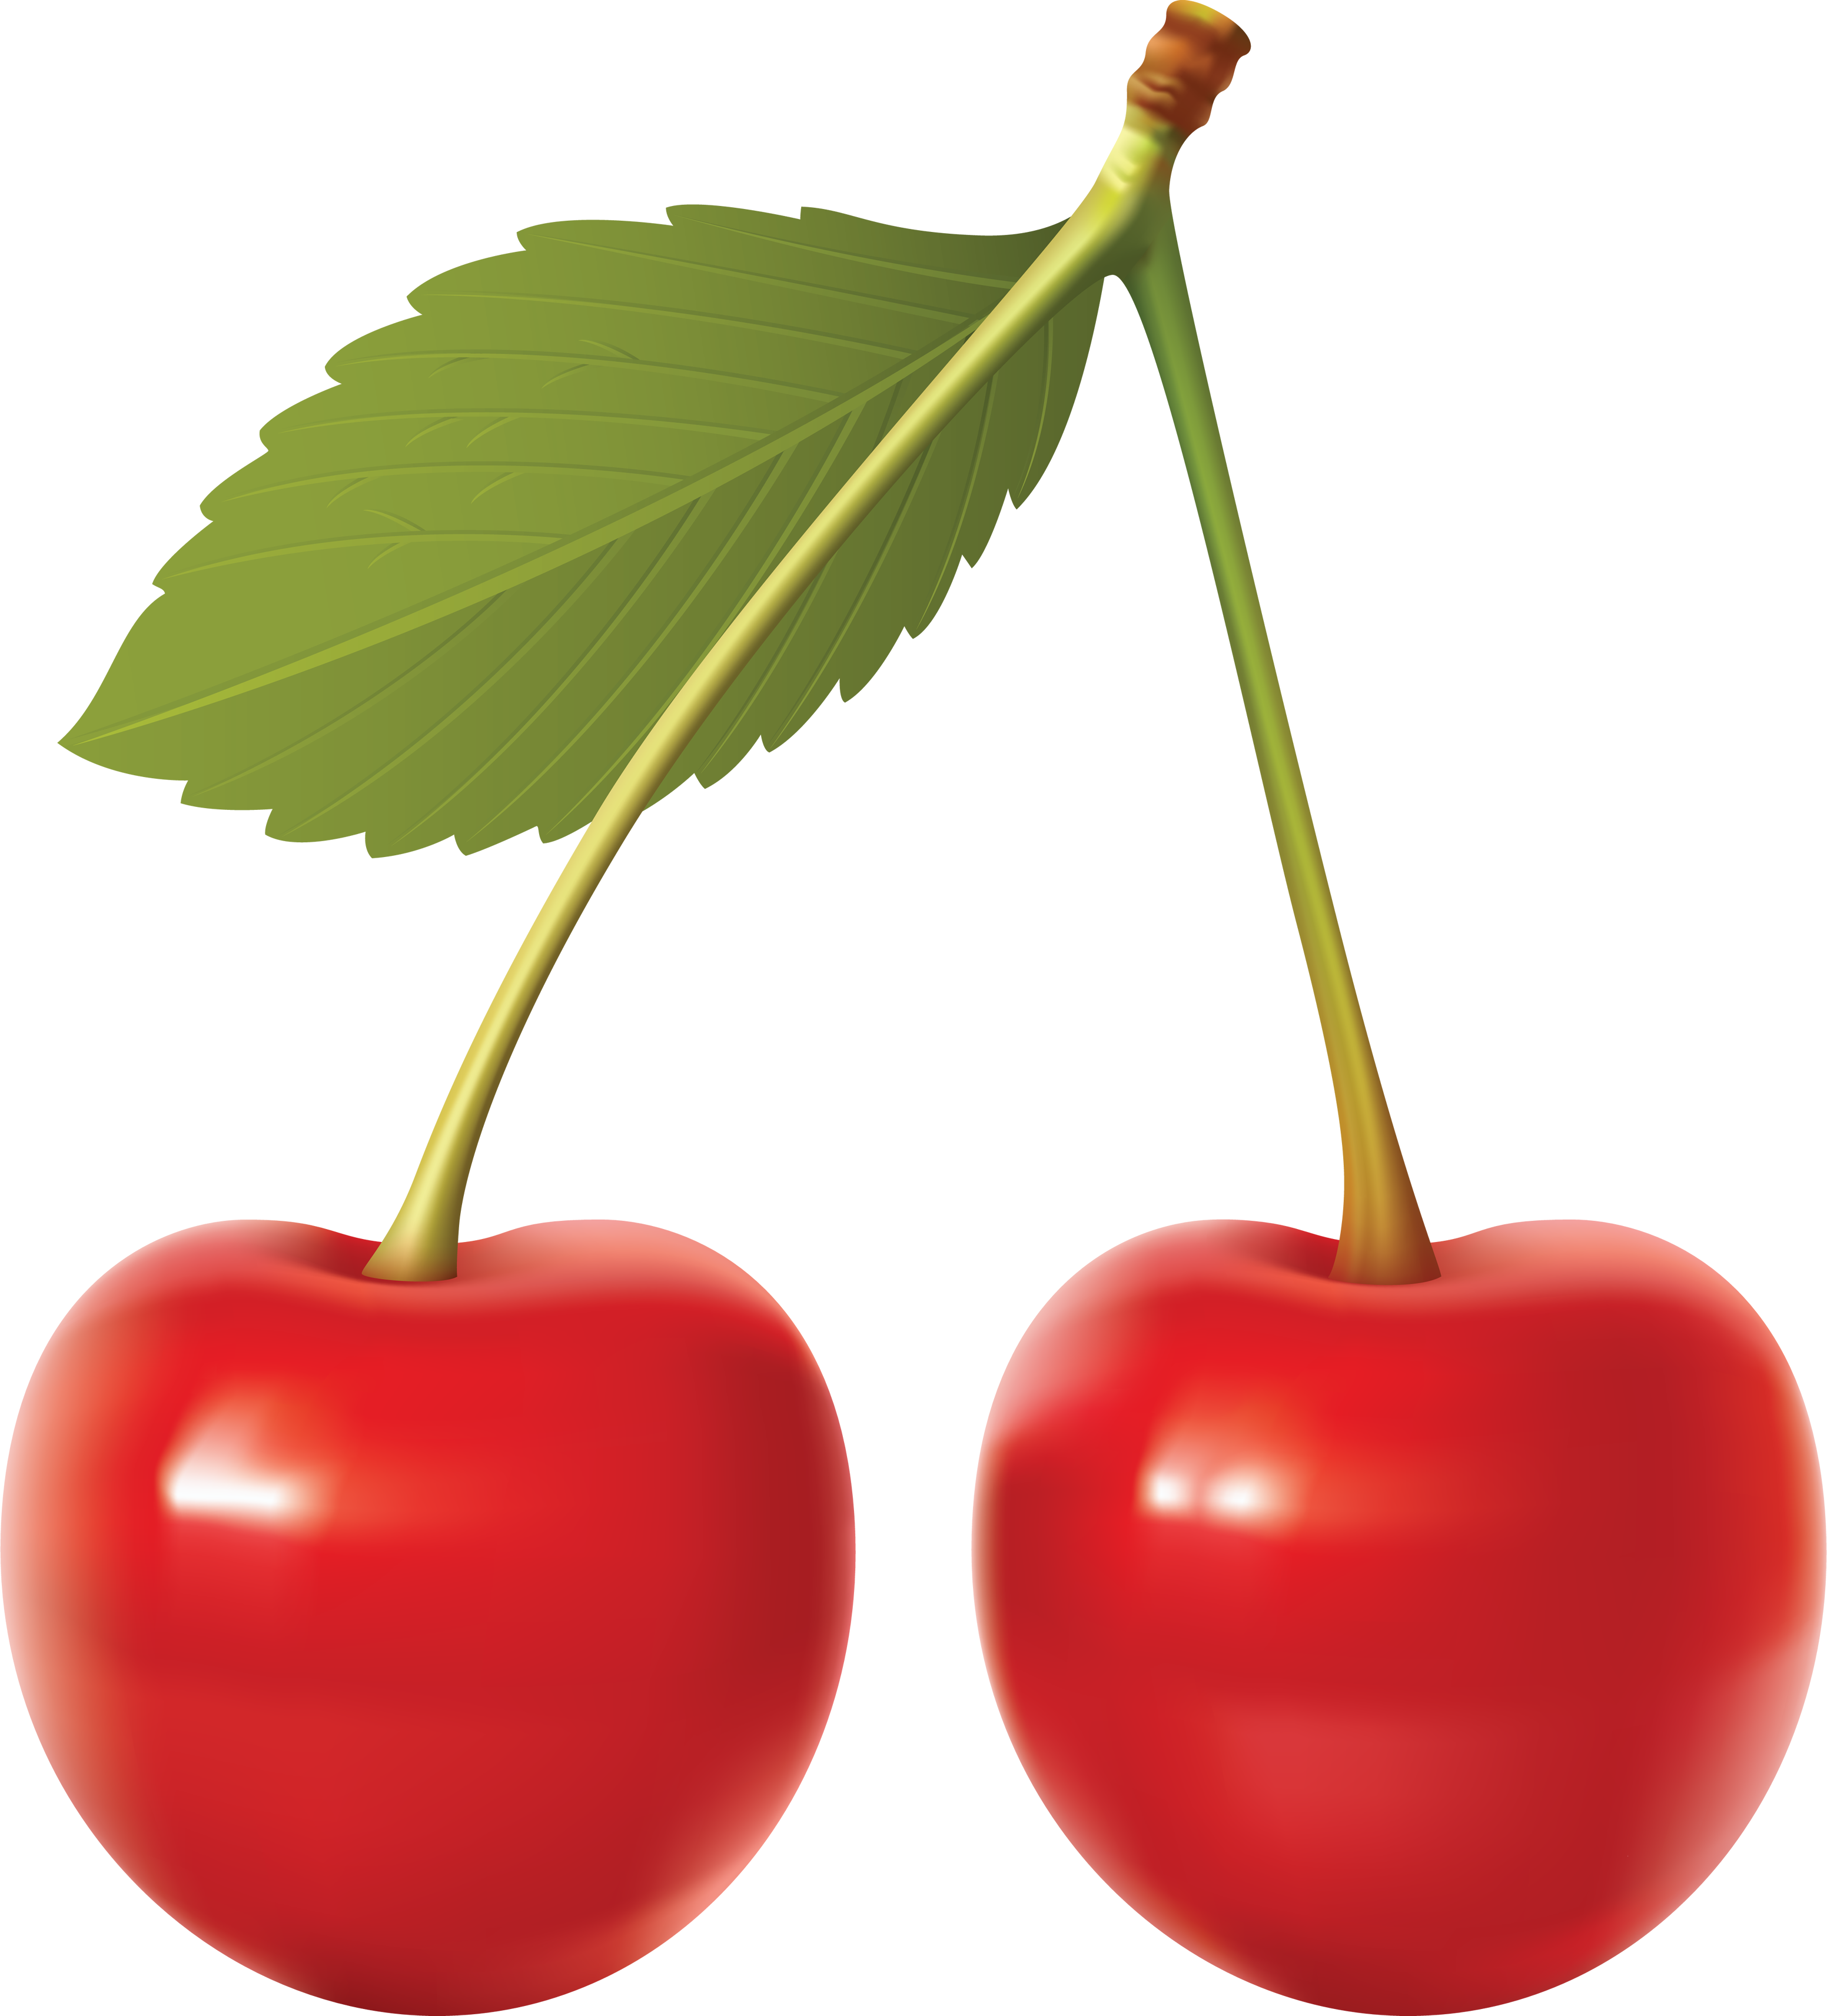 Strawberries clipart cherry. Hd png transparent images